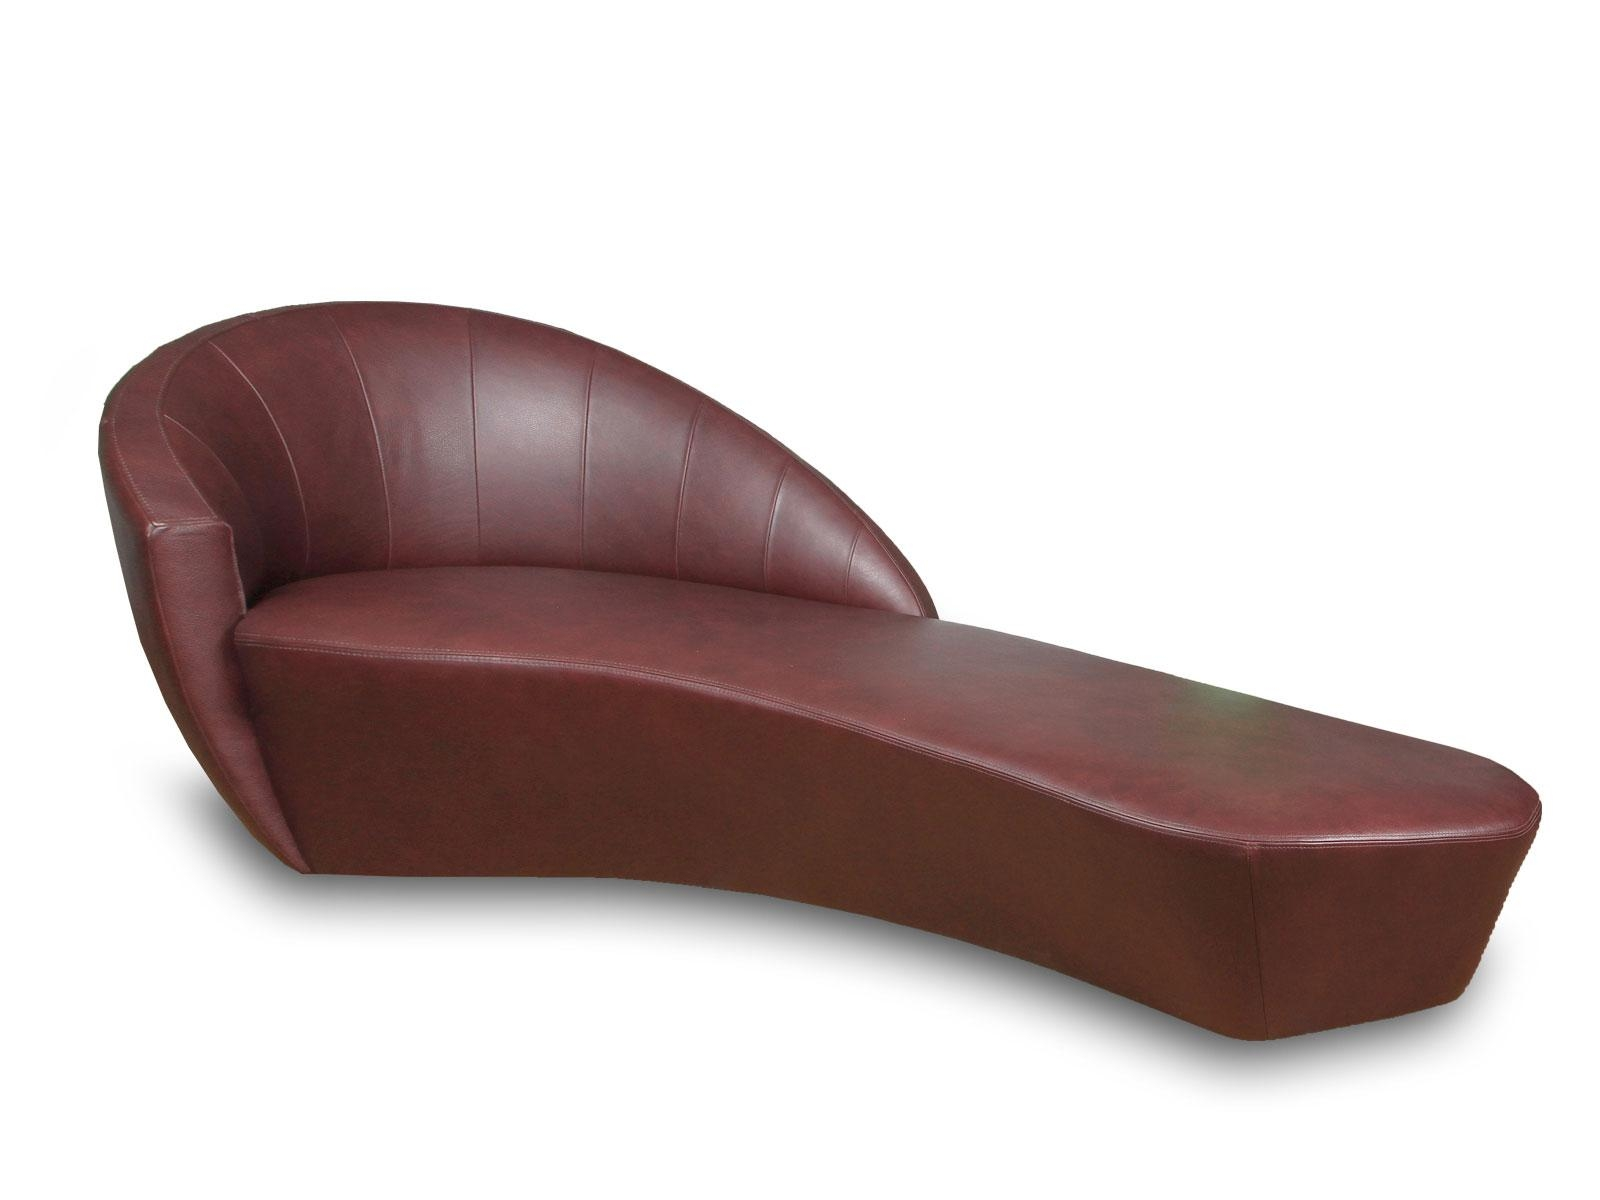 Furniture: Luxury Modern Chair Design With Leather Chaise For Lounge Sofas And Chairs (Image 9 of 20)